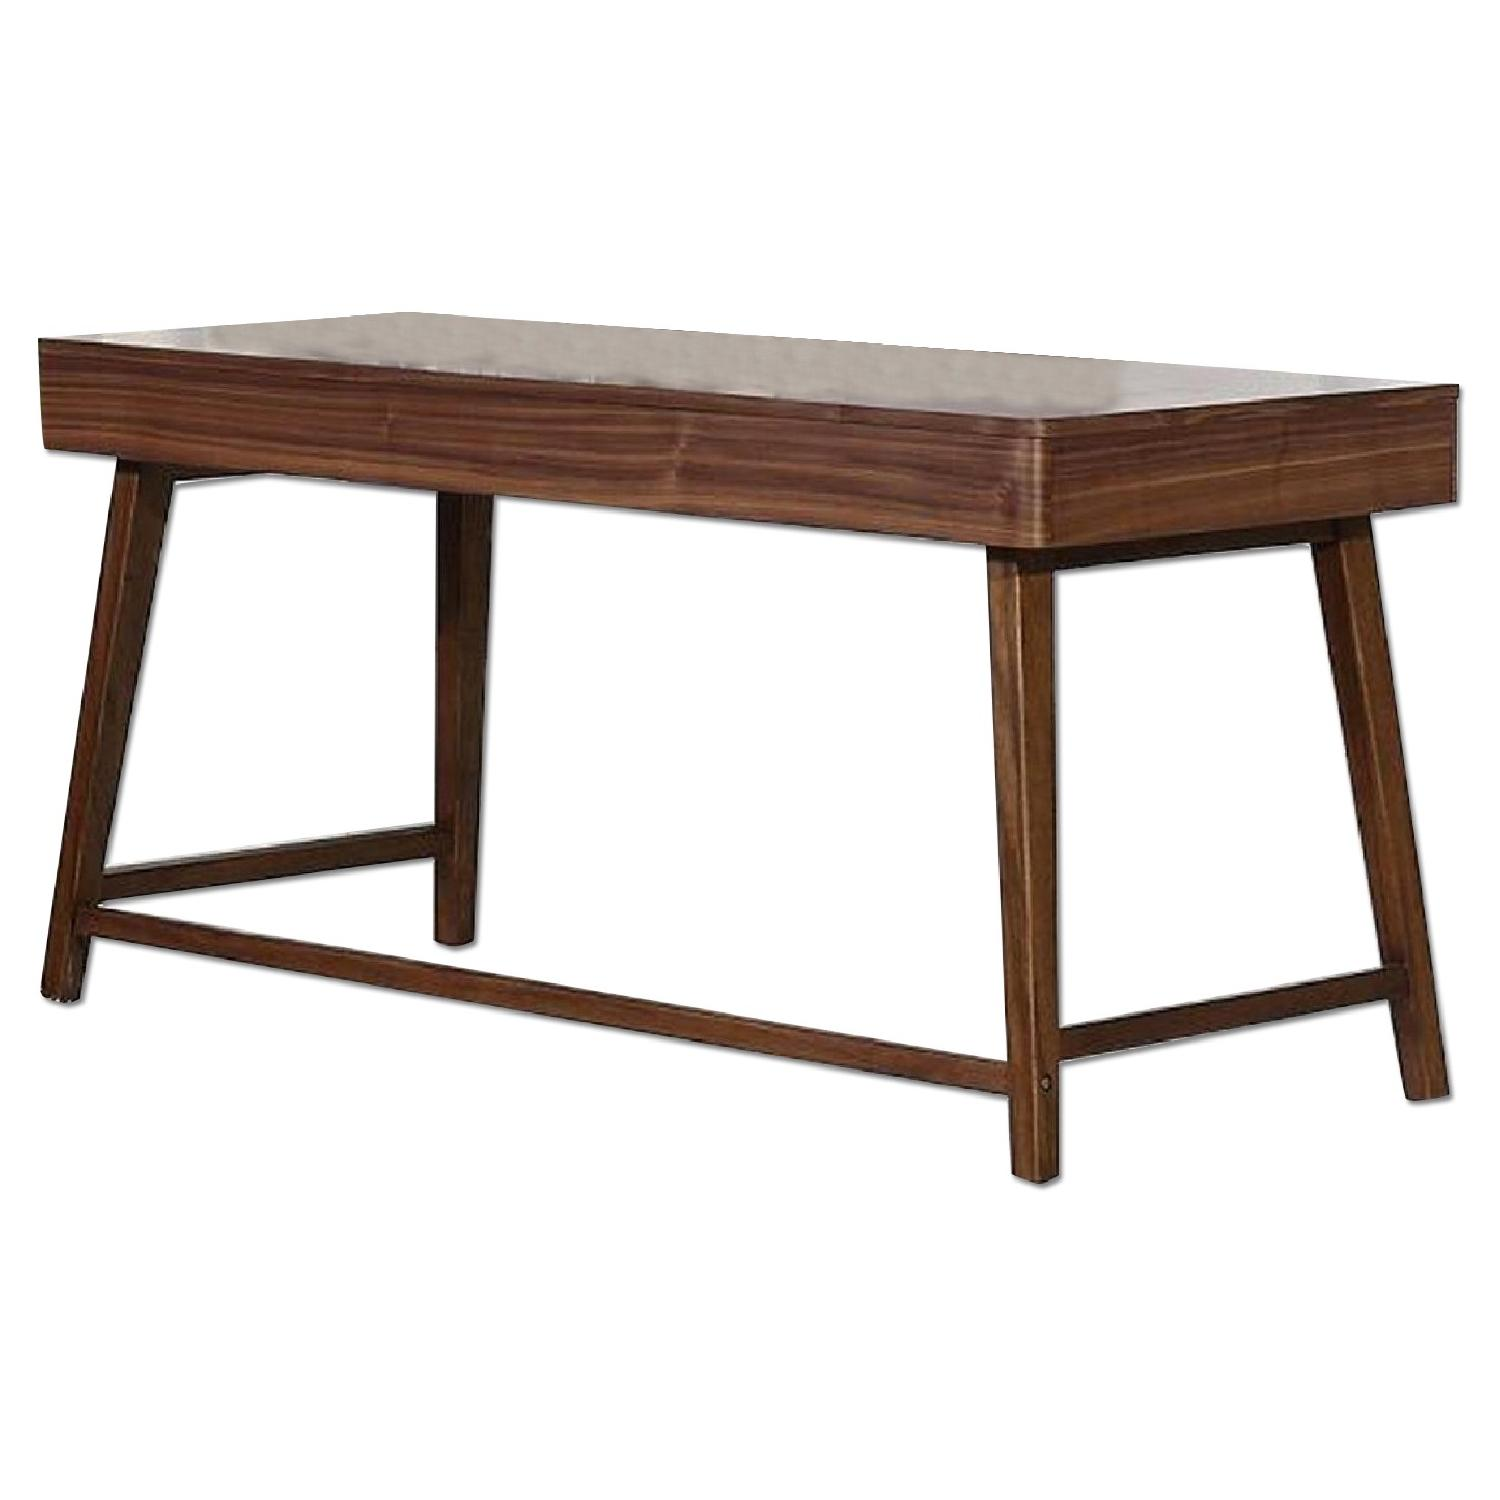 Mid Century Style Writing Desk in Walnut Finish w/ 2 Drawers - image-0